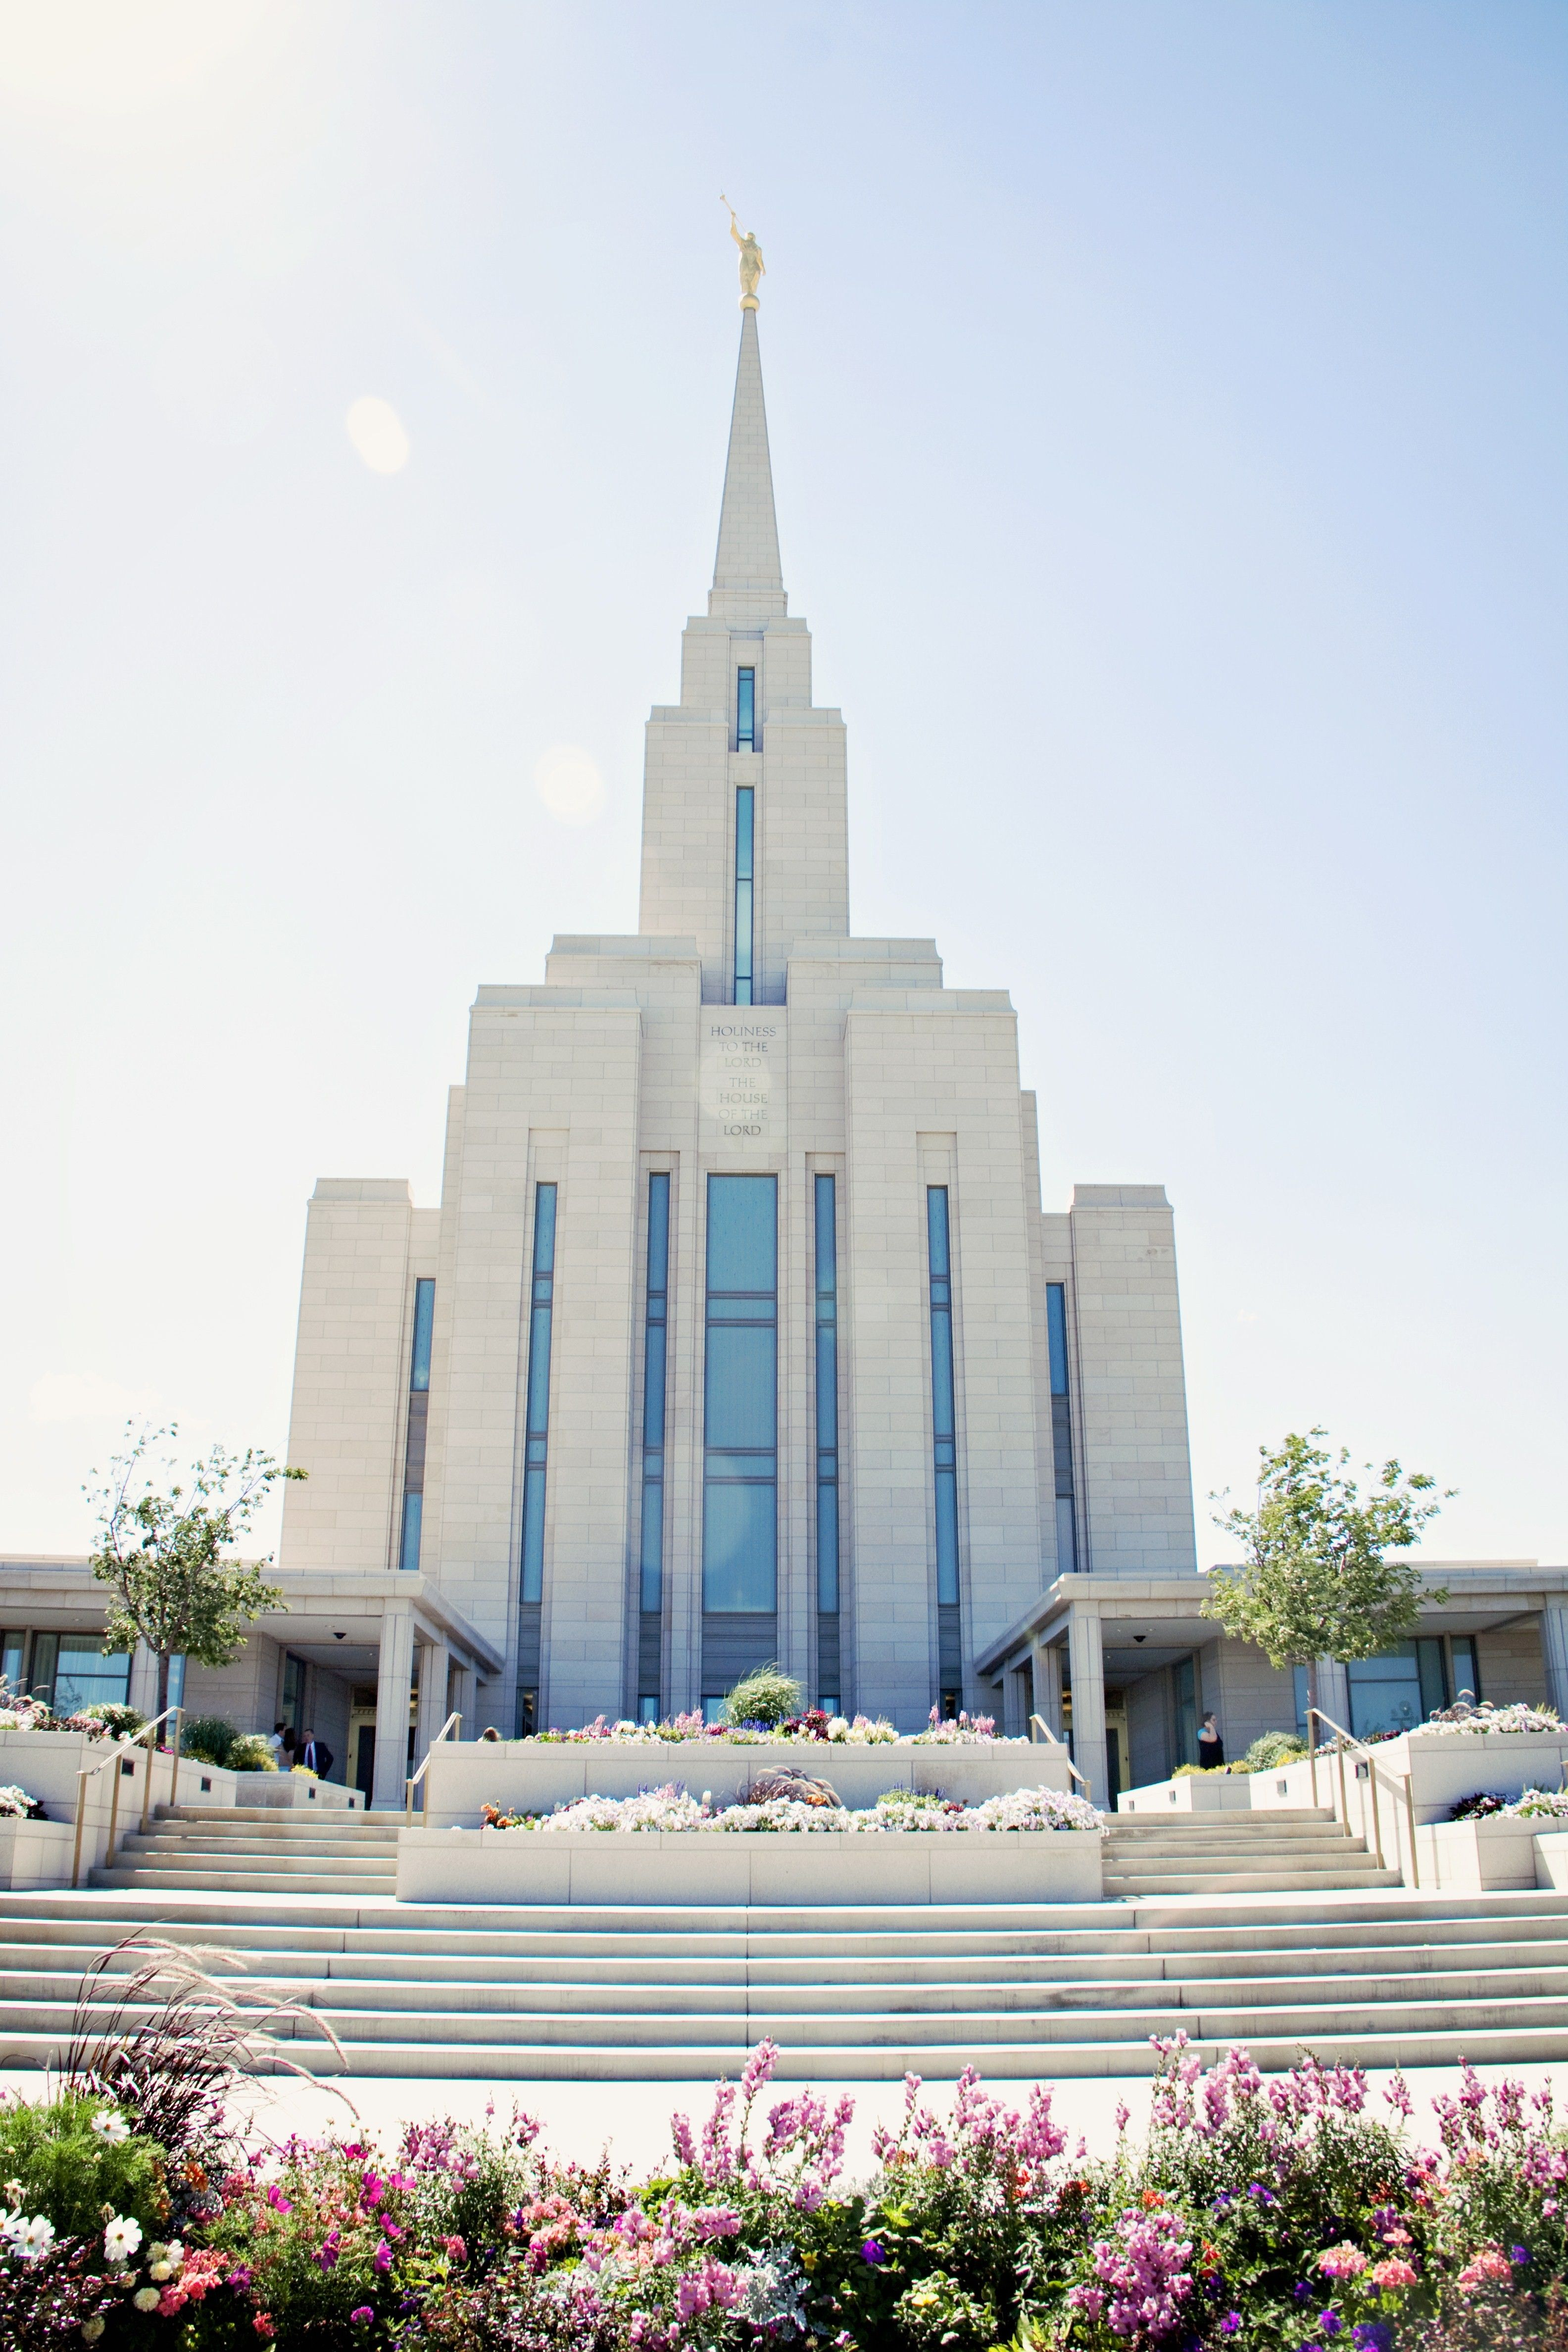 The Oquirrh Mountain Utah Temple, including entrance and scenery.